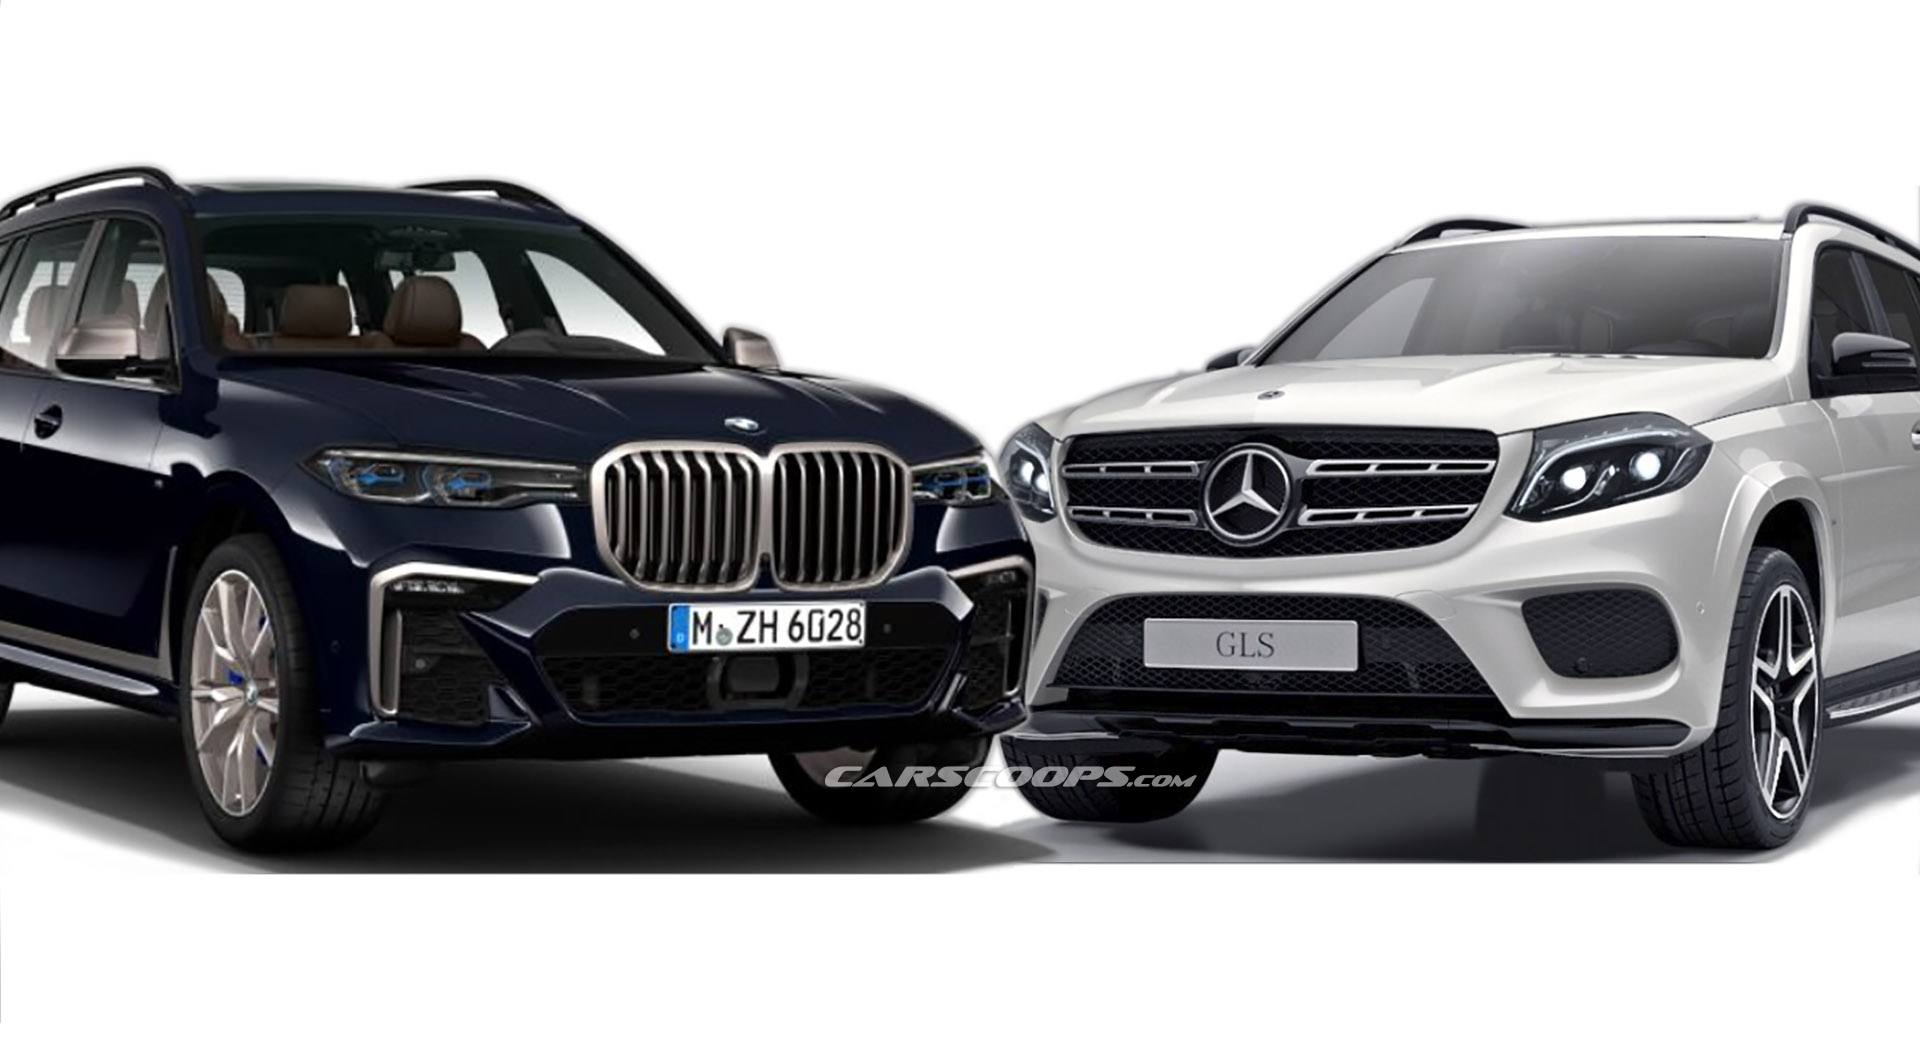 BMW X7 2018 >> BMW X7 Vs Mercedes GLS: Which Full-Size German Luxury SUV Do You Prefer? | Carscoops